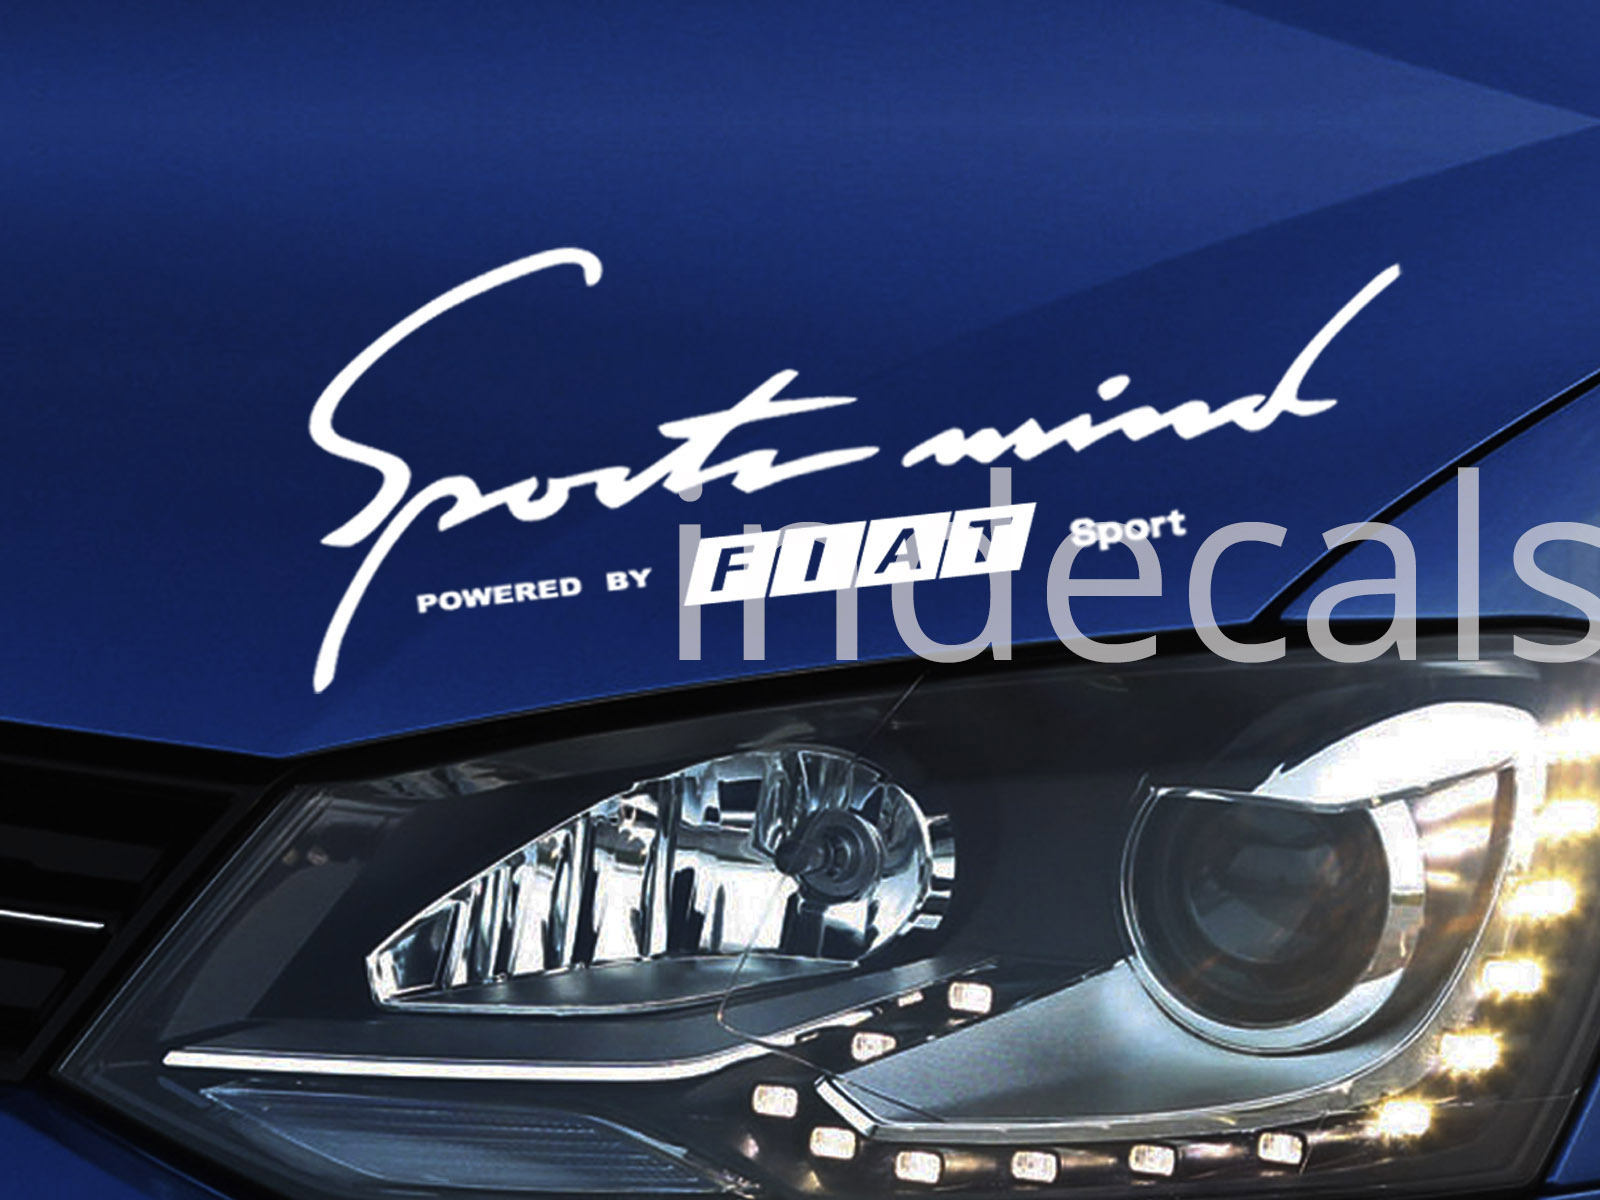 1 x Fiat Sports Mind Sticker - White